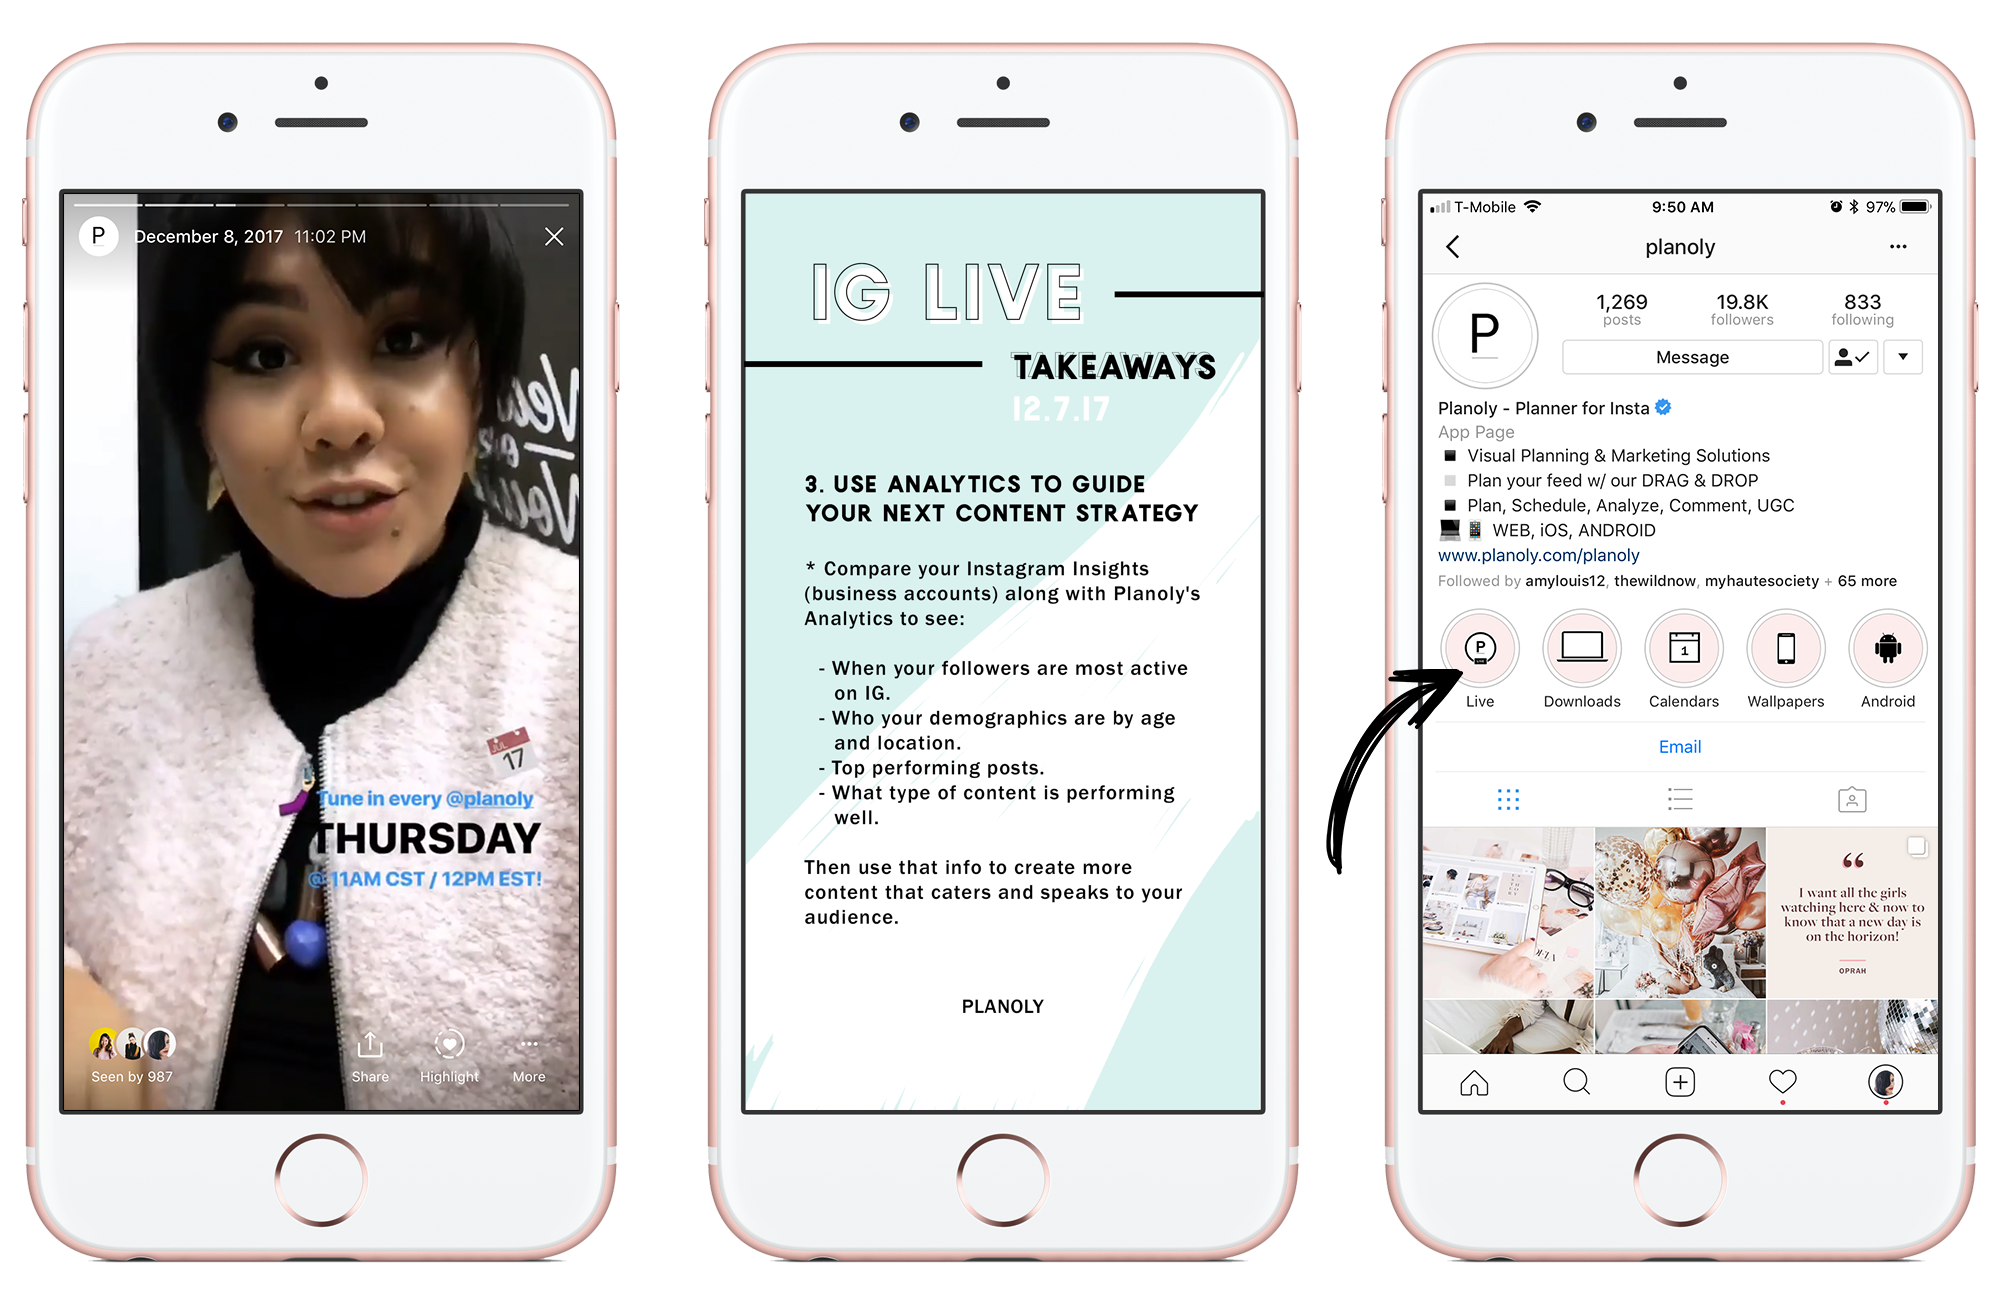 Instagram Stories Live on PLANOLY